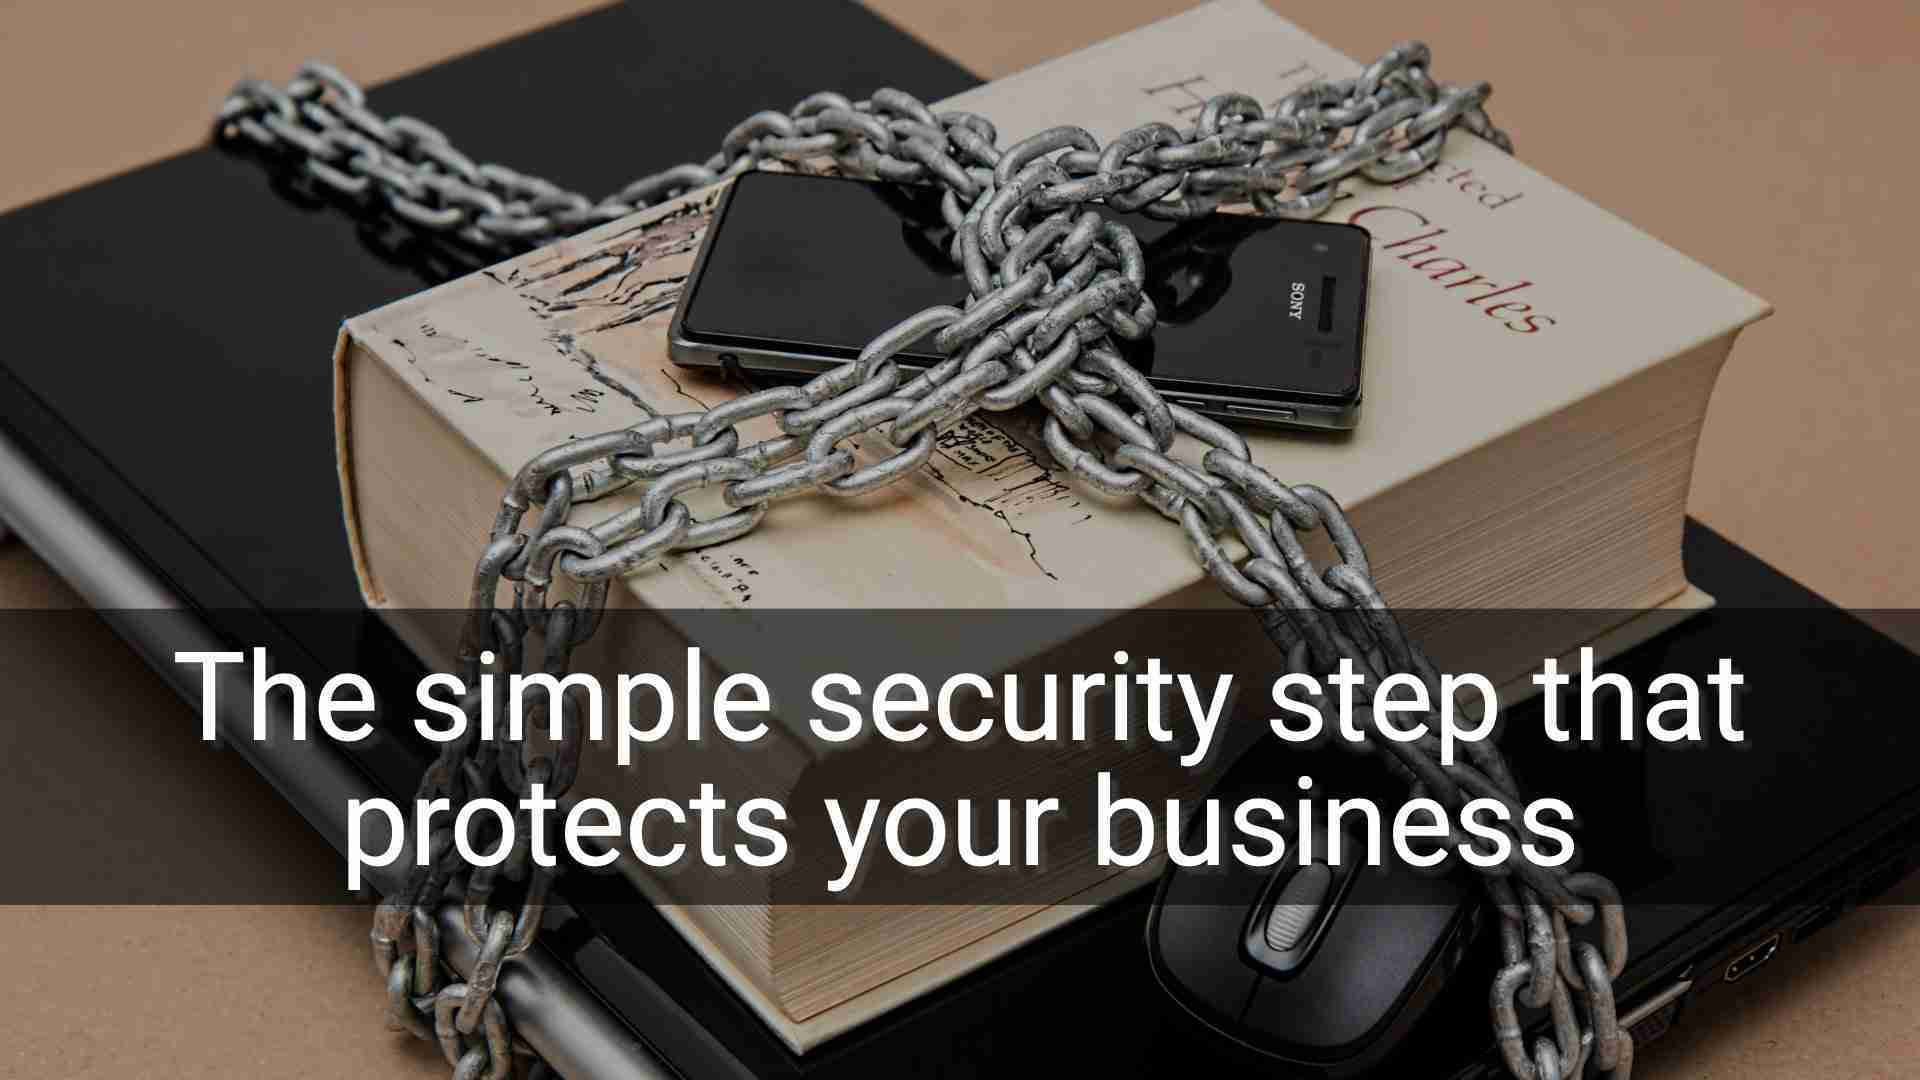 The simple security step that protects your business